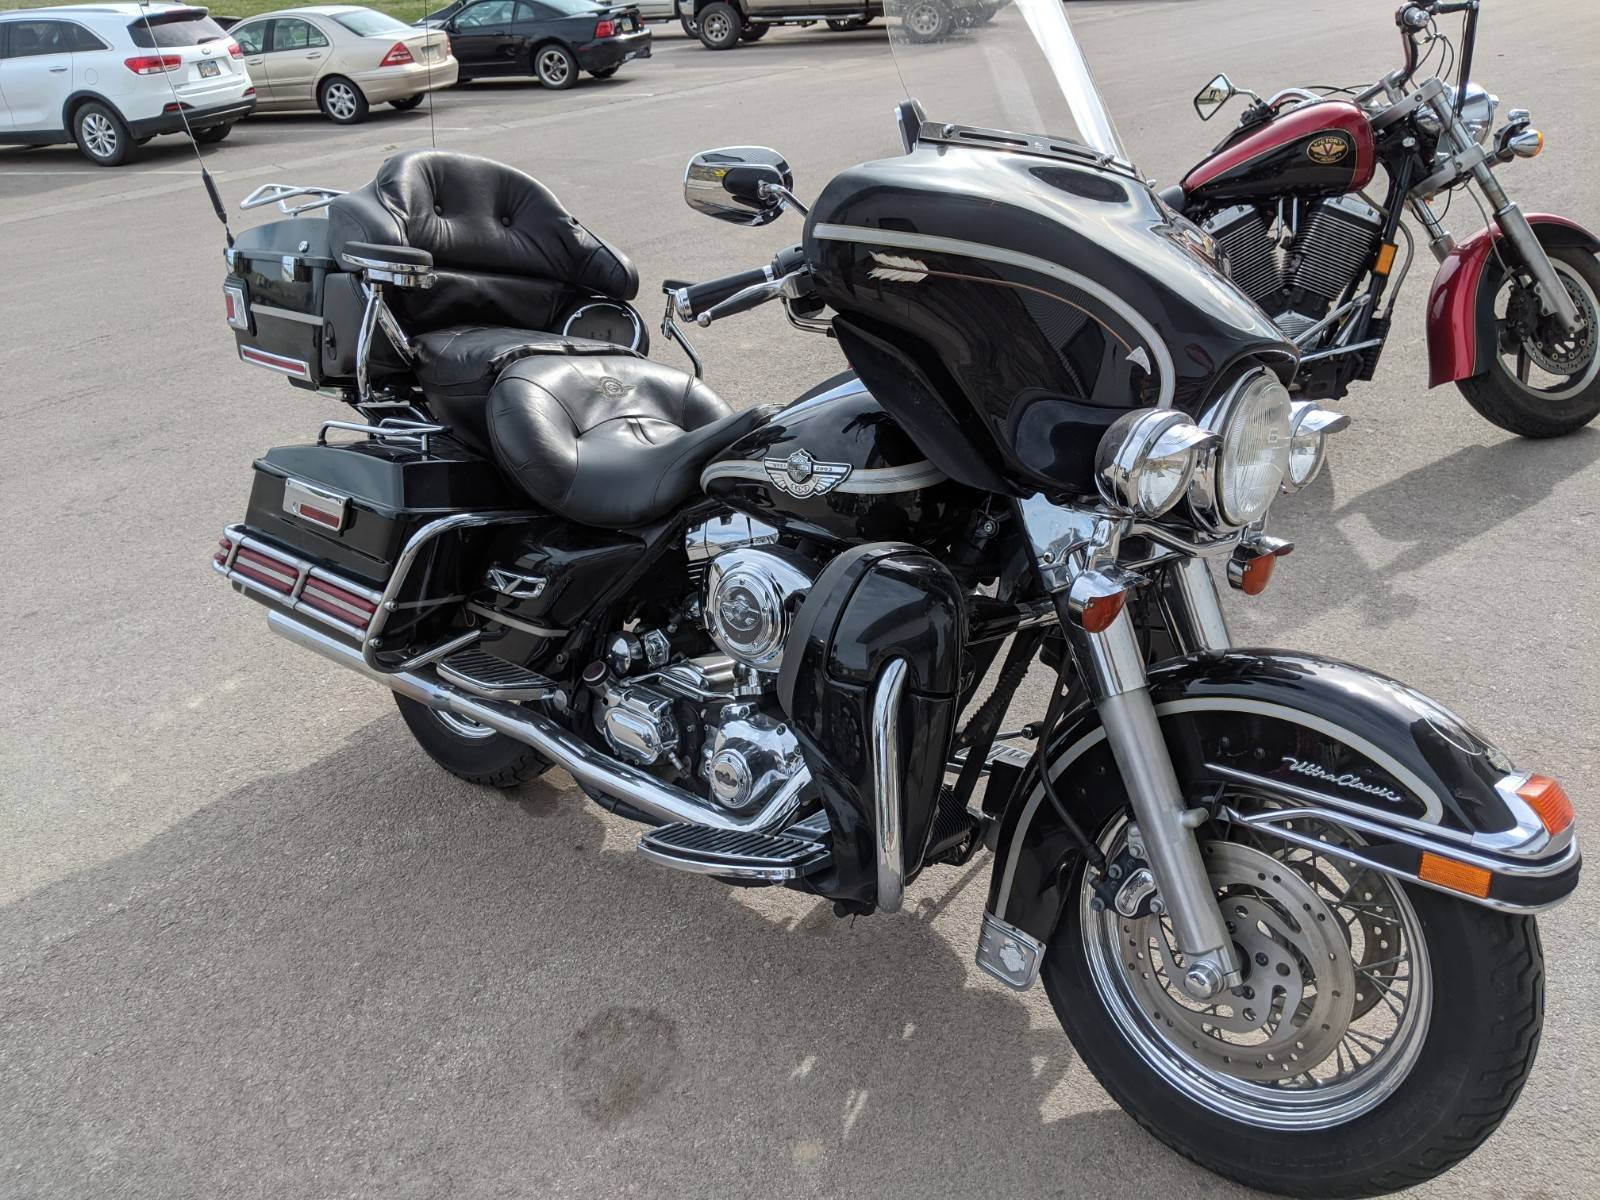 2003 Harley-Davidson FLHTCUI Ultra Classic® Electra Glide® in Rapid City, South Dakota - Photo 4